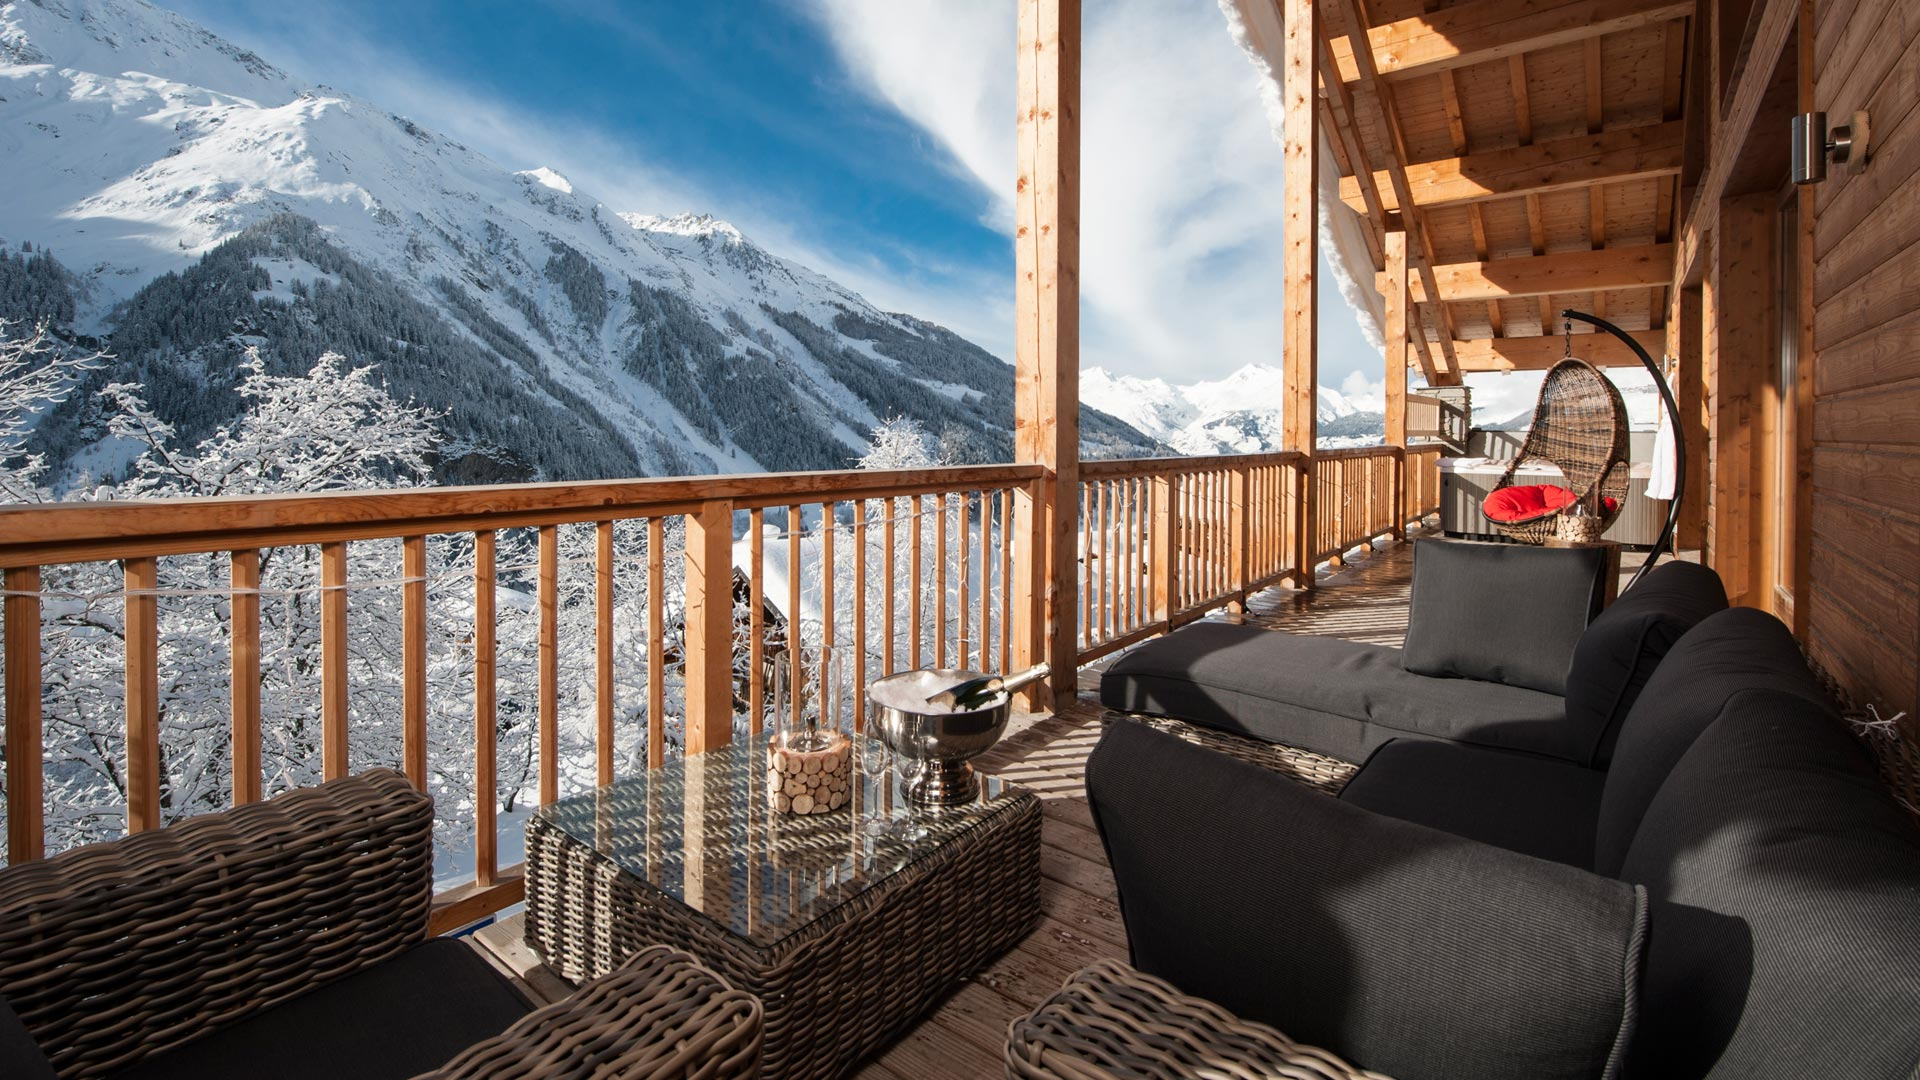 Seating Area on the Balcony in La Marquise Chalet in Ste Foy